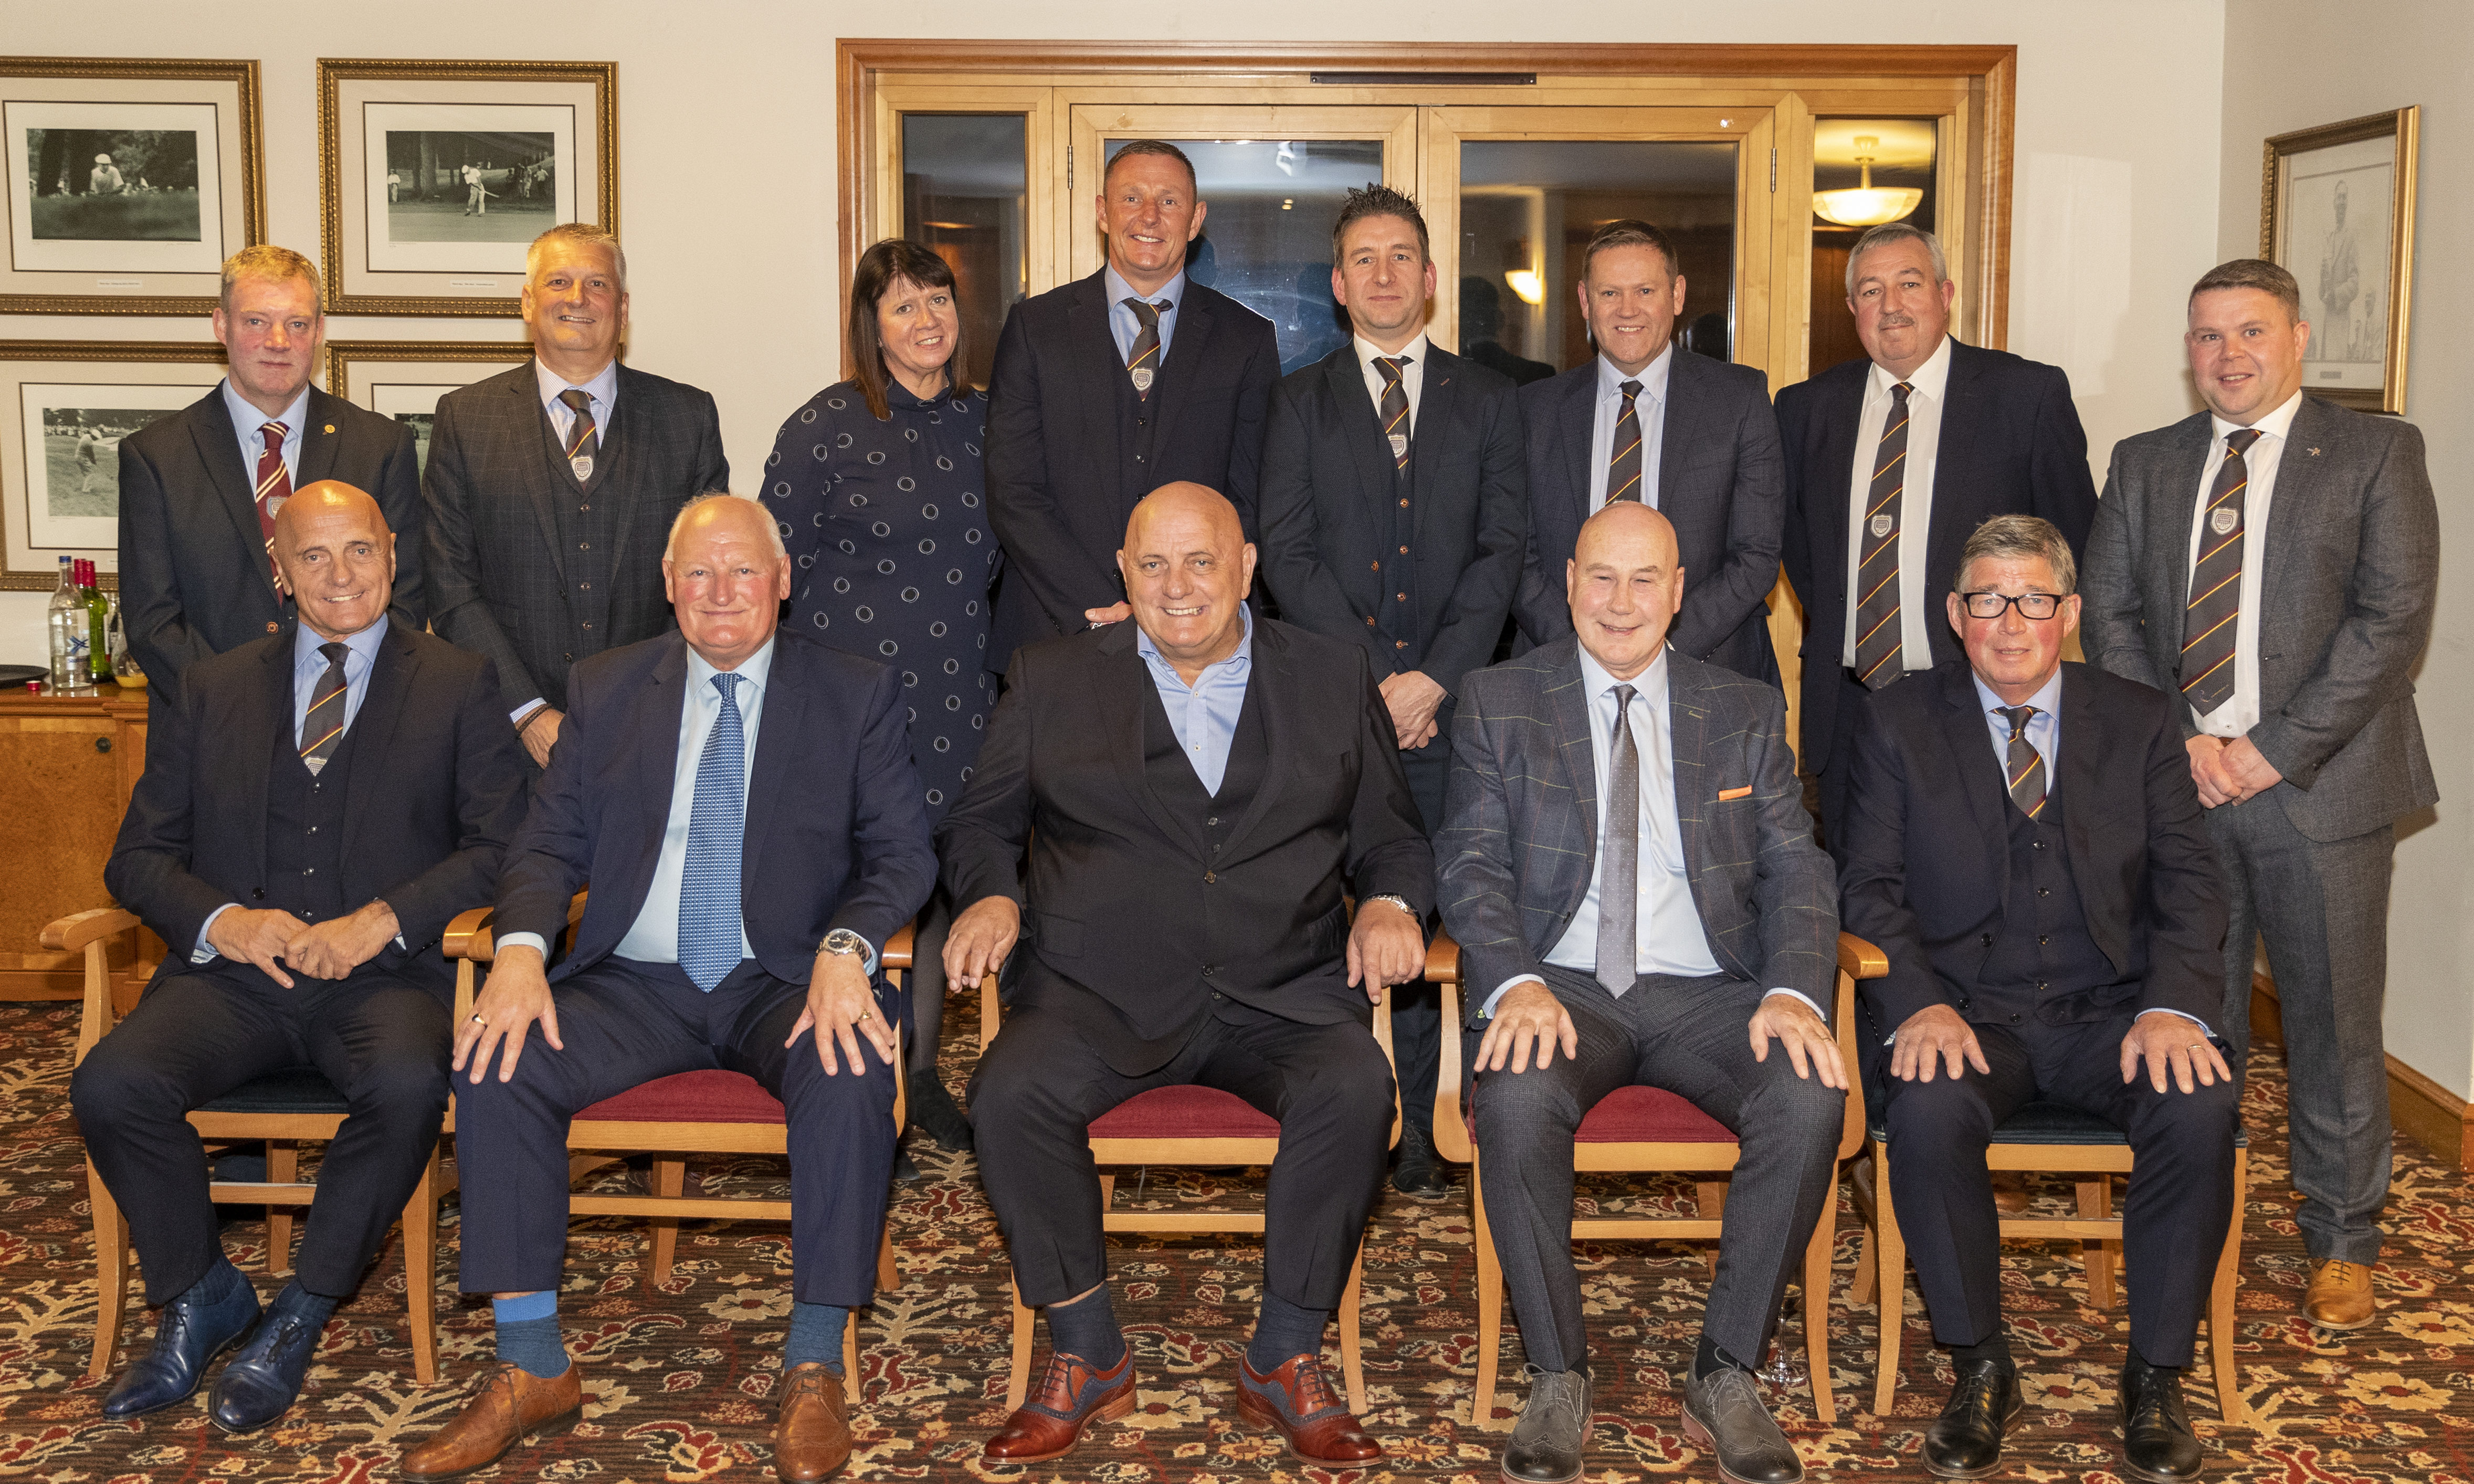 Back Row  Dr Gary Callon (Club Secretary), Mike Caird (Chairman), Anne McKeown (Director), Robert Douglas (Goalkeeping Coach), Robert Sim (Treasurer), Brian Cargill (Director), Ewen West (Vice Chairman), Jonny Booth (Director)  Front Row  Ian Campbell (Assistant Manager), Jimmy Bone (Hall of Fame Inductee), Dick Campbell (Manager), Derek Rylance (Hall of Fame Inductee), John Young (Coach)